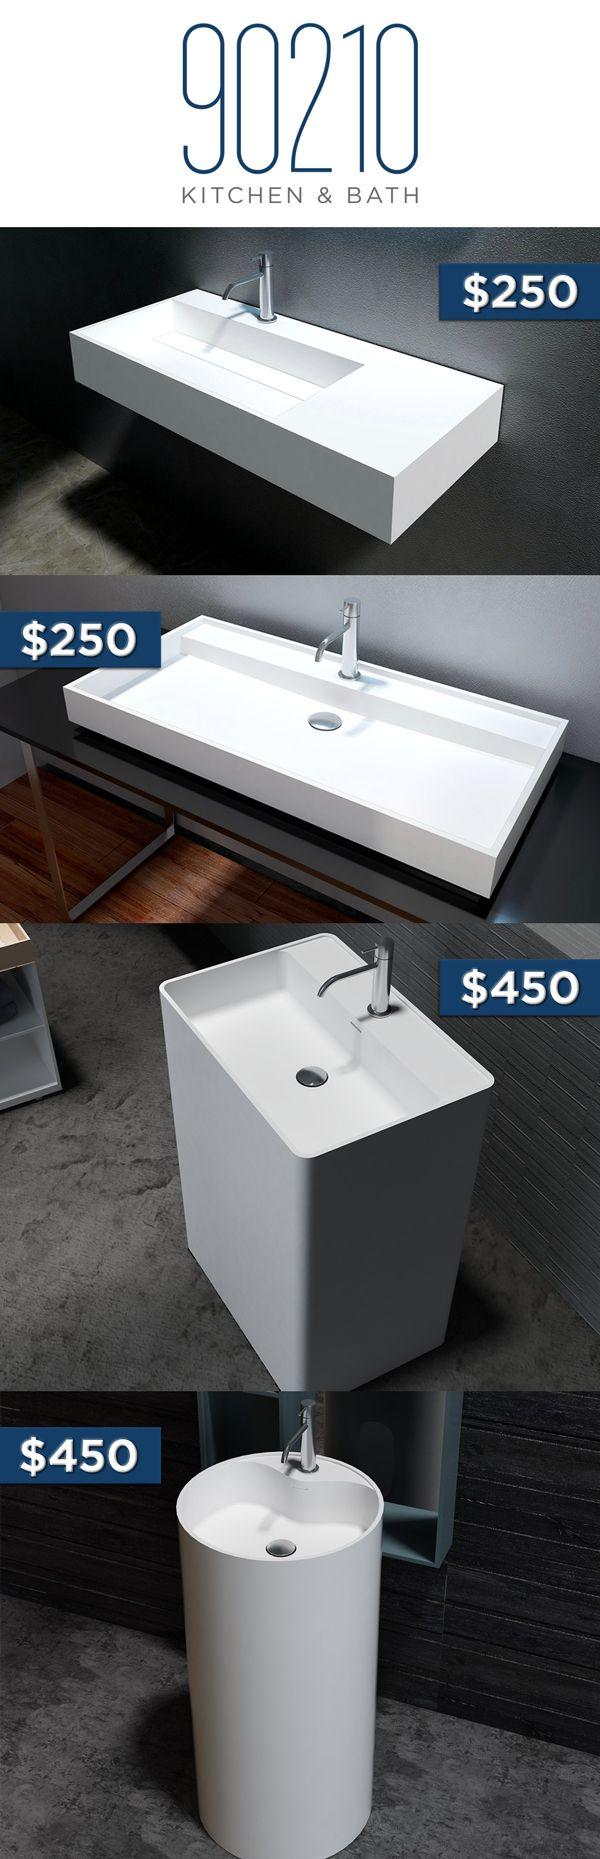 Bathroom Renovation Under $500 4 vessel sink ideas under $500 ! | bathroom renovation ideas